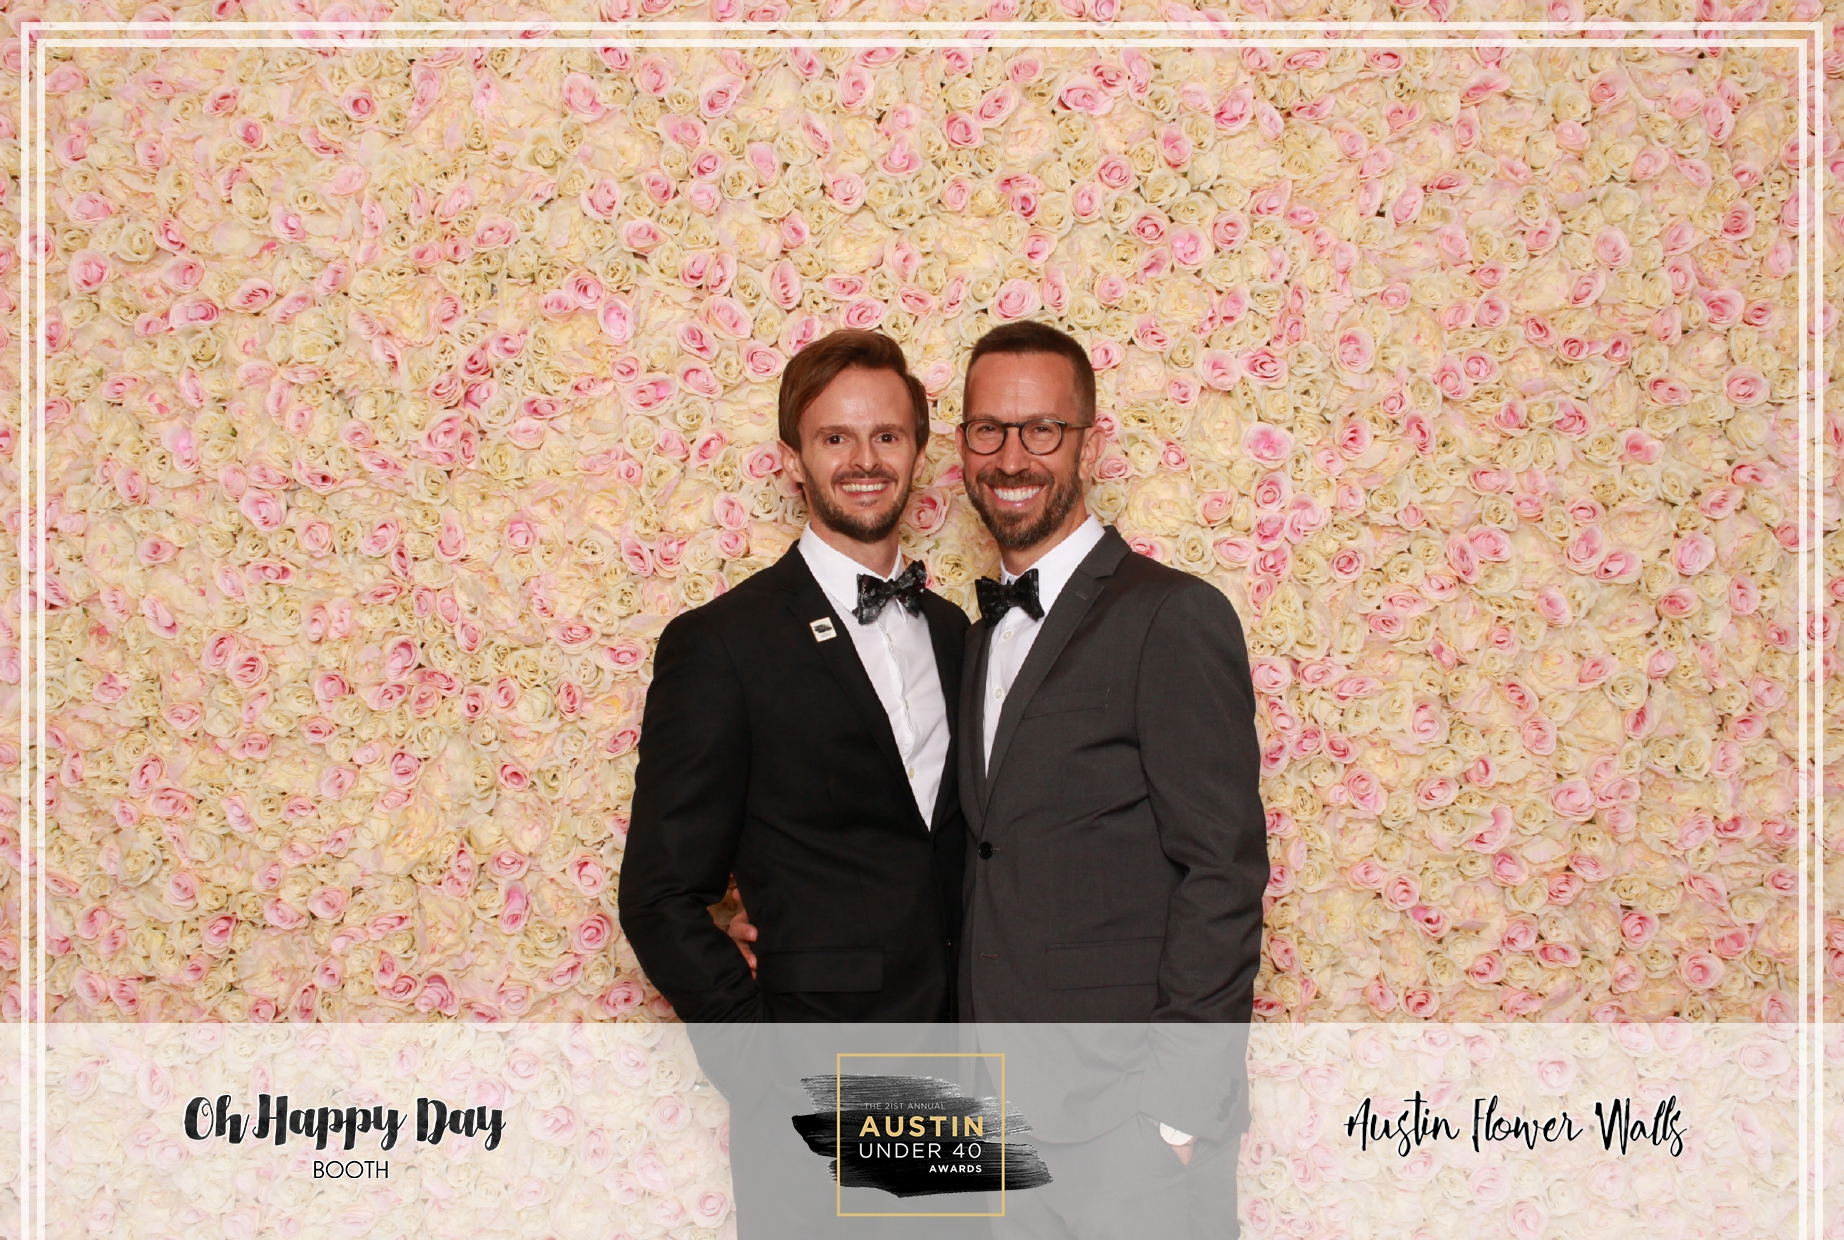 Oh Happy Day Booth - Austin Under 40-104.jpg